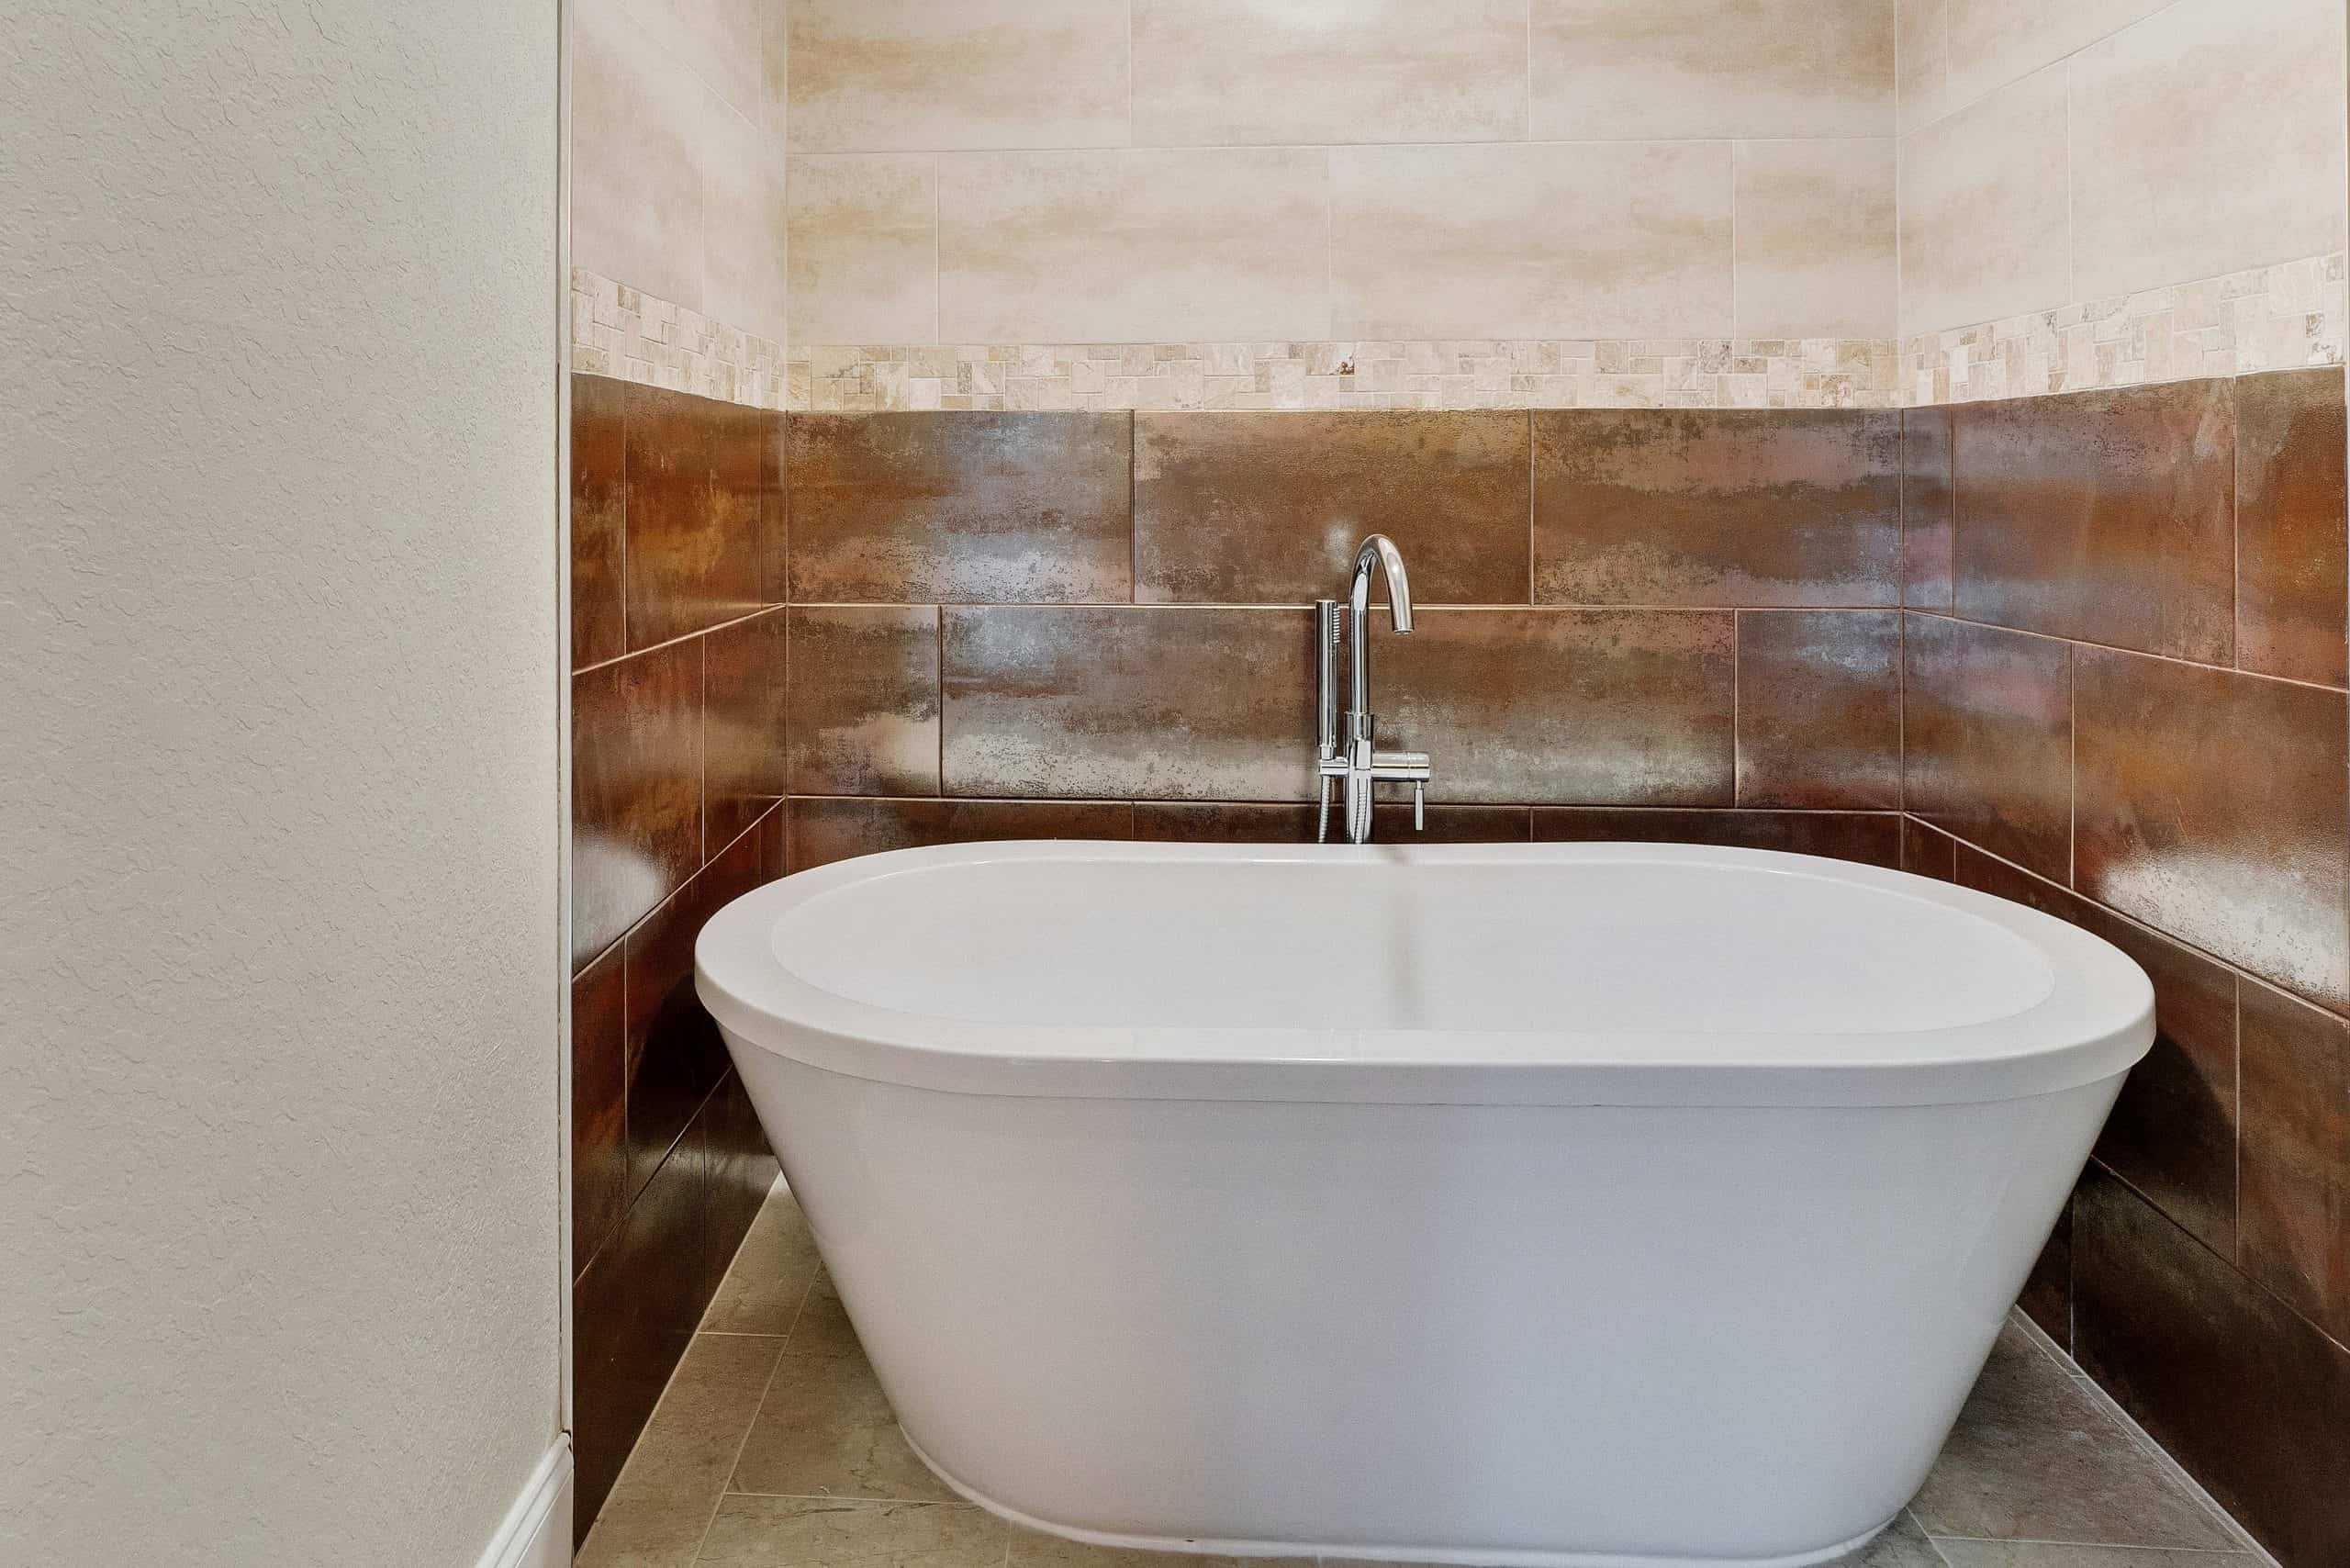 Bathroom remodel with free standing tub